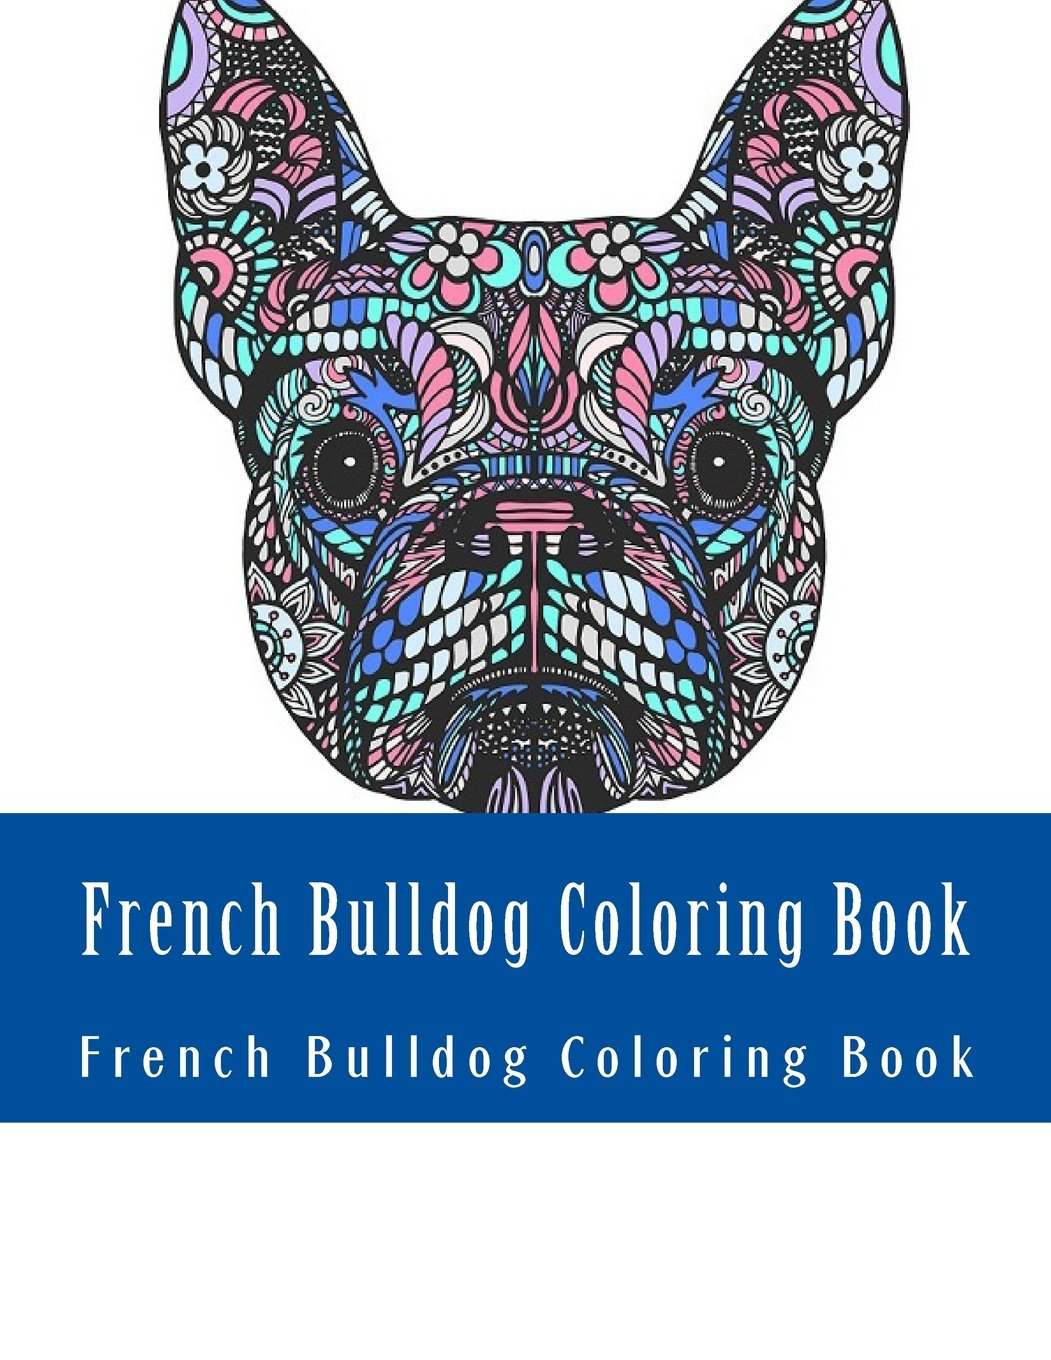 Amazon Com French Bulldog Coloring Book Large One Sided Stress Relieving Relaxing French Bulldog Coloring Book For Grownups Women Men Youths Easy French Bulldog Designs Patterns For Relaxation 9781547125999 Coloring Book